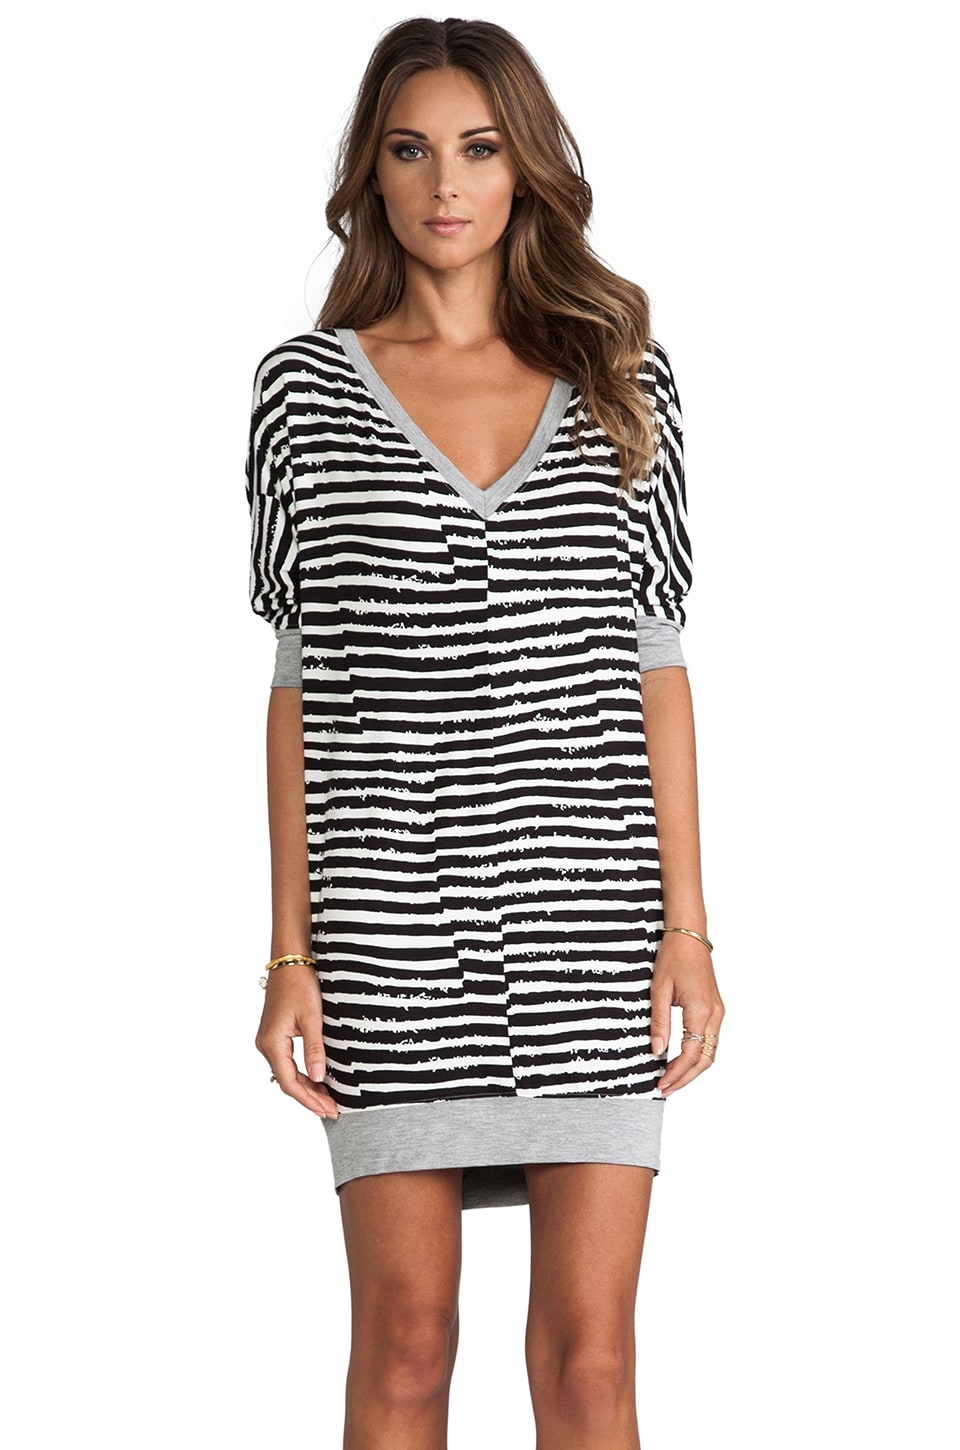 Trina Turk Amorosa Dress in Black